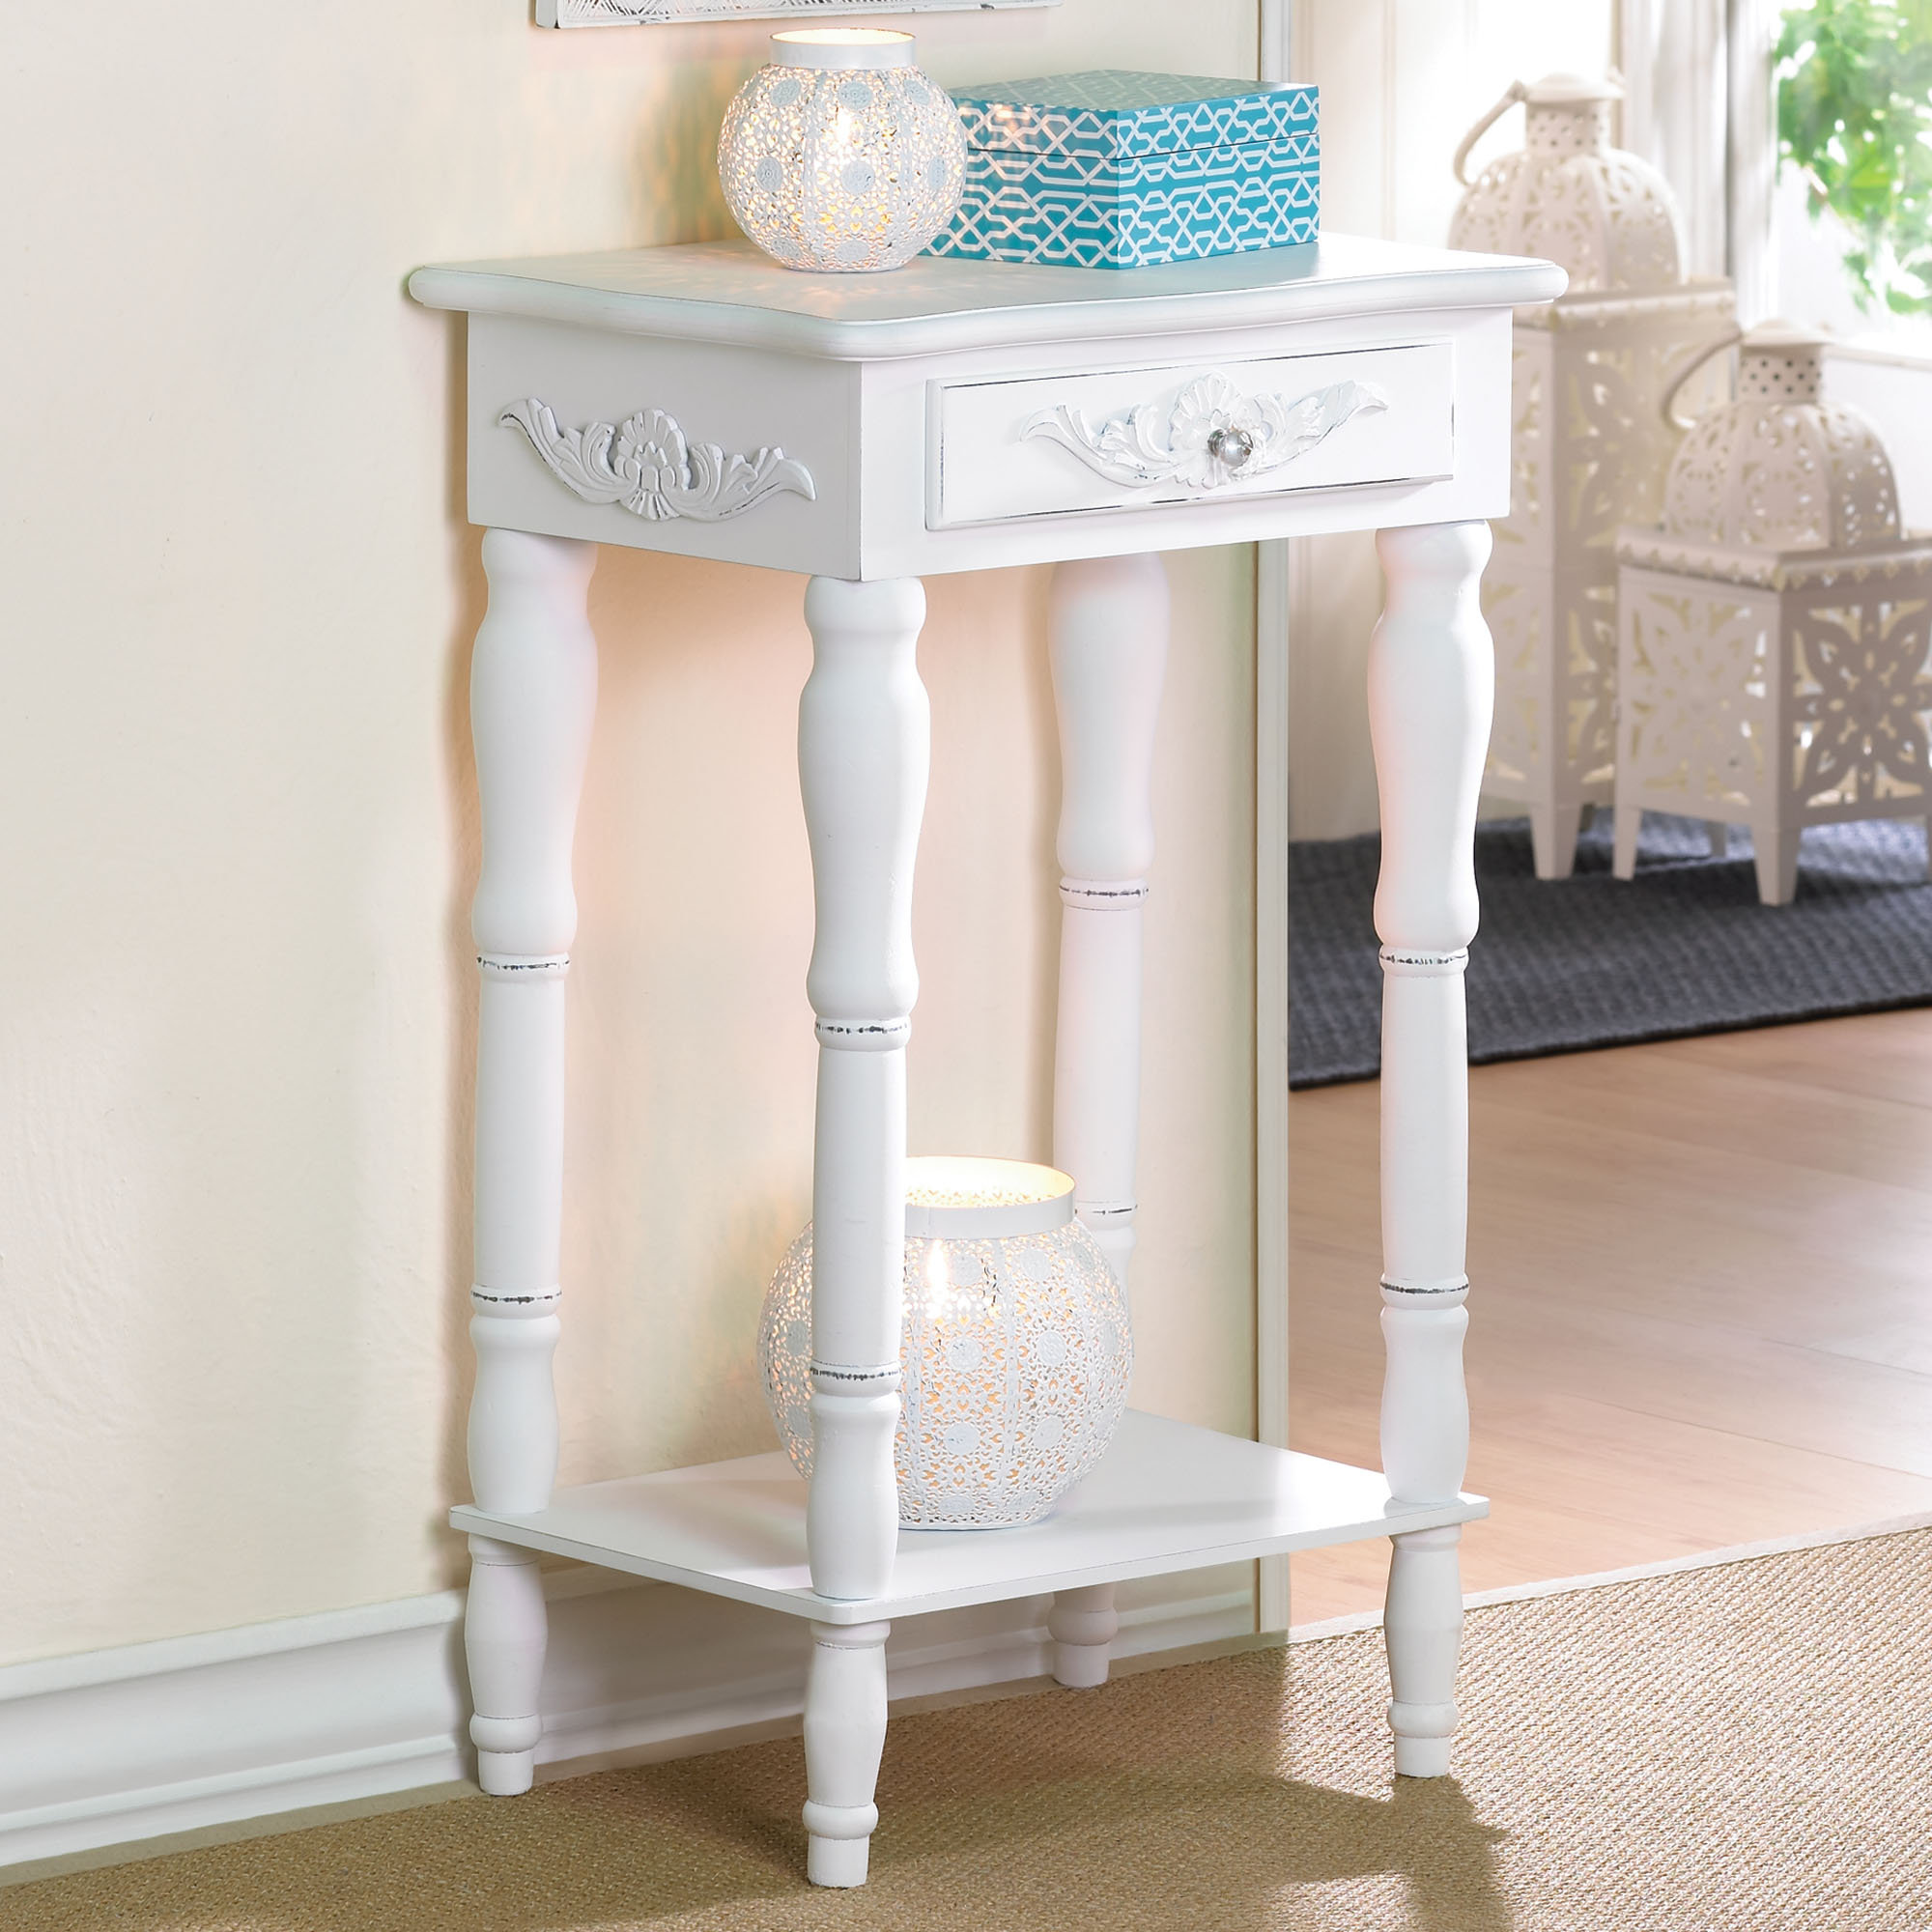 tall accent table stylish item for utilizing the empty space white classic with shelf underneath and small drawer bathroom tables round farmhouse sun shades decks drum chairs back